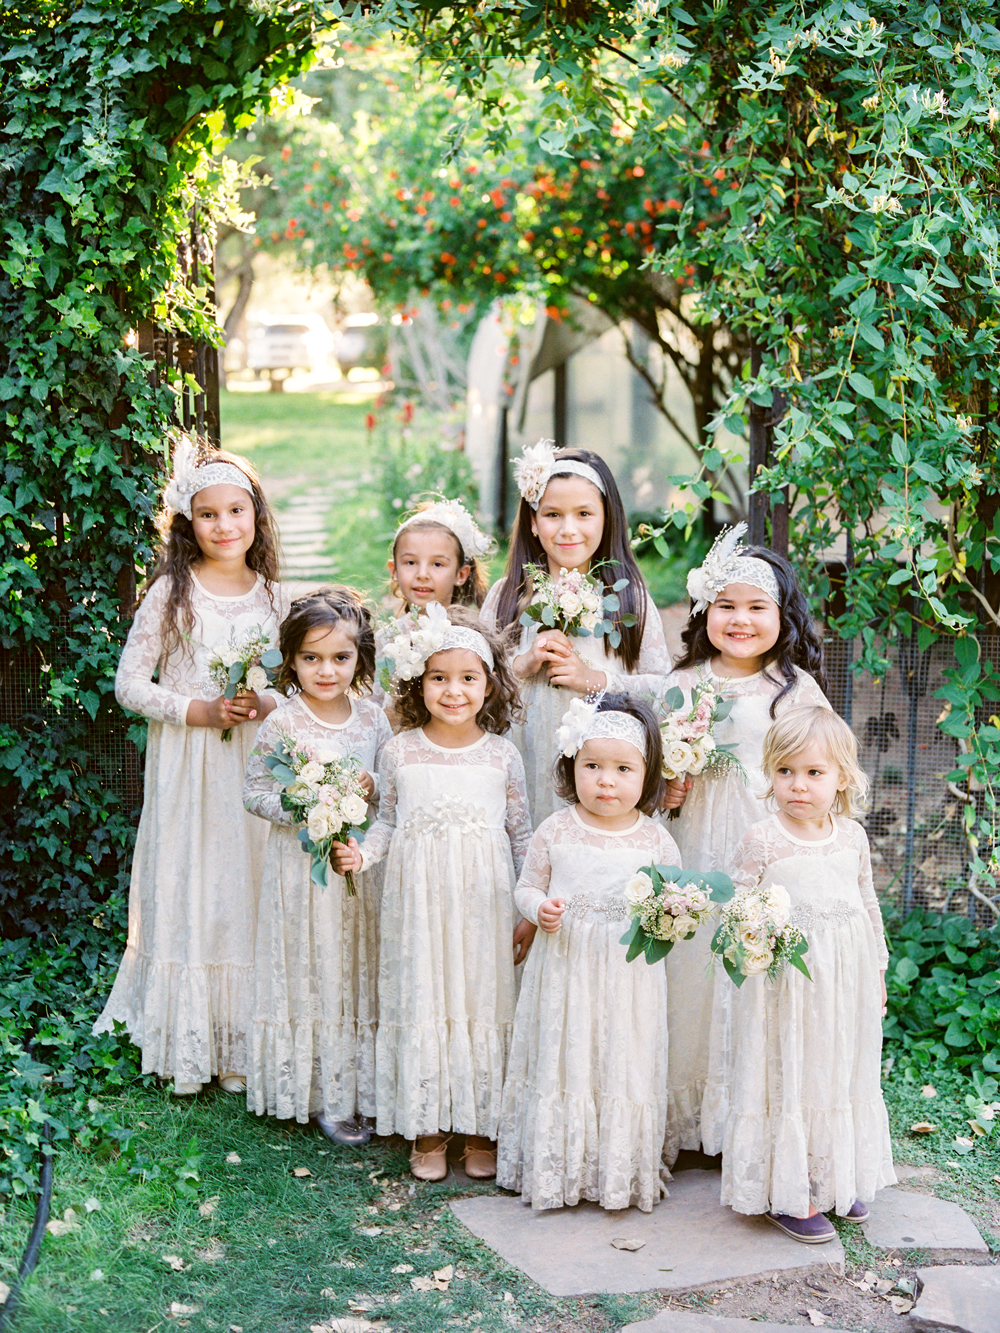 Can Kids Wear White to a Wedding?